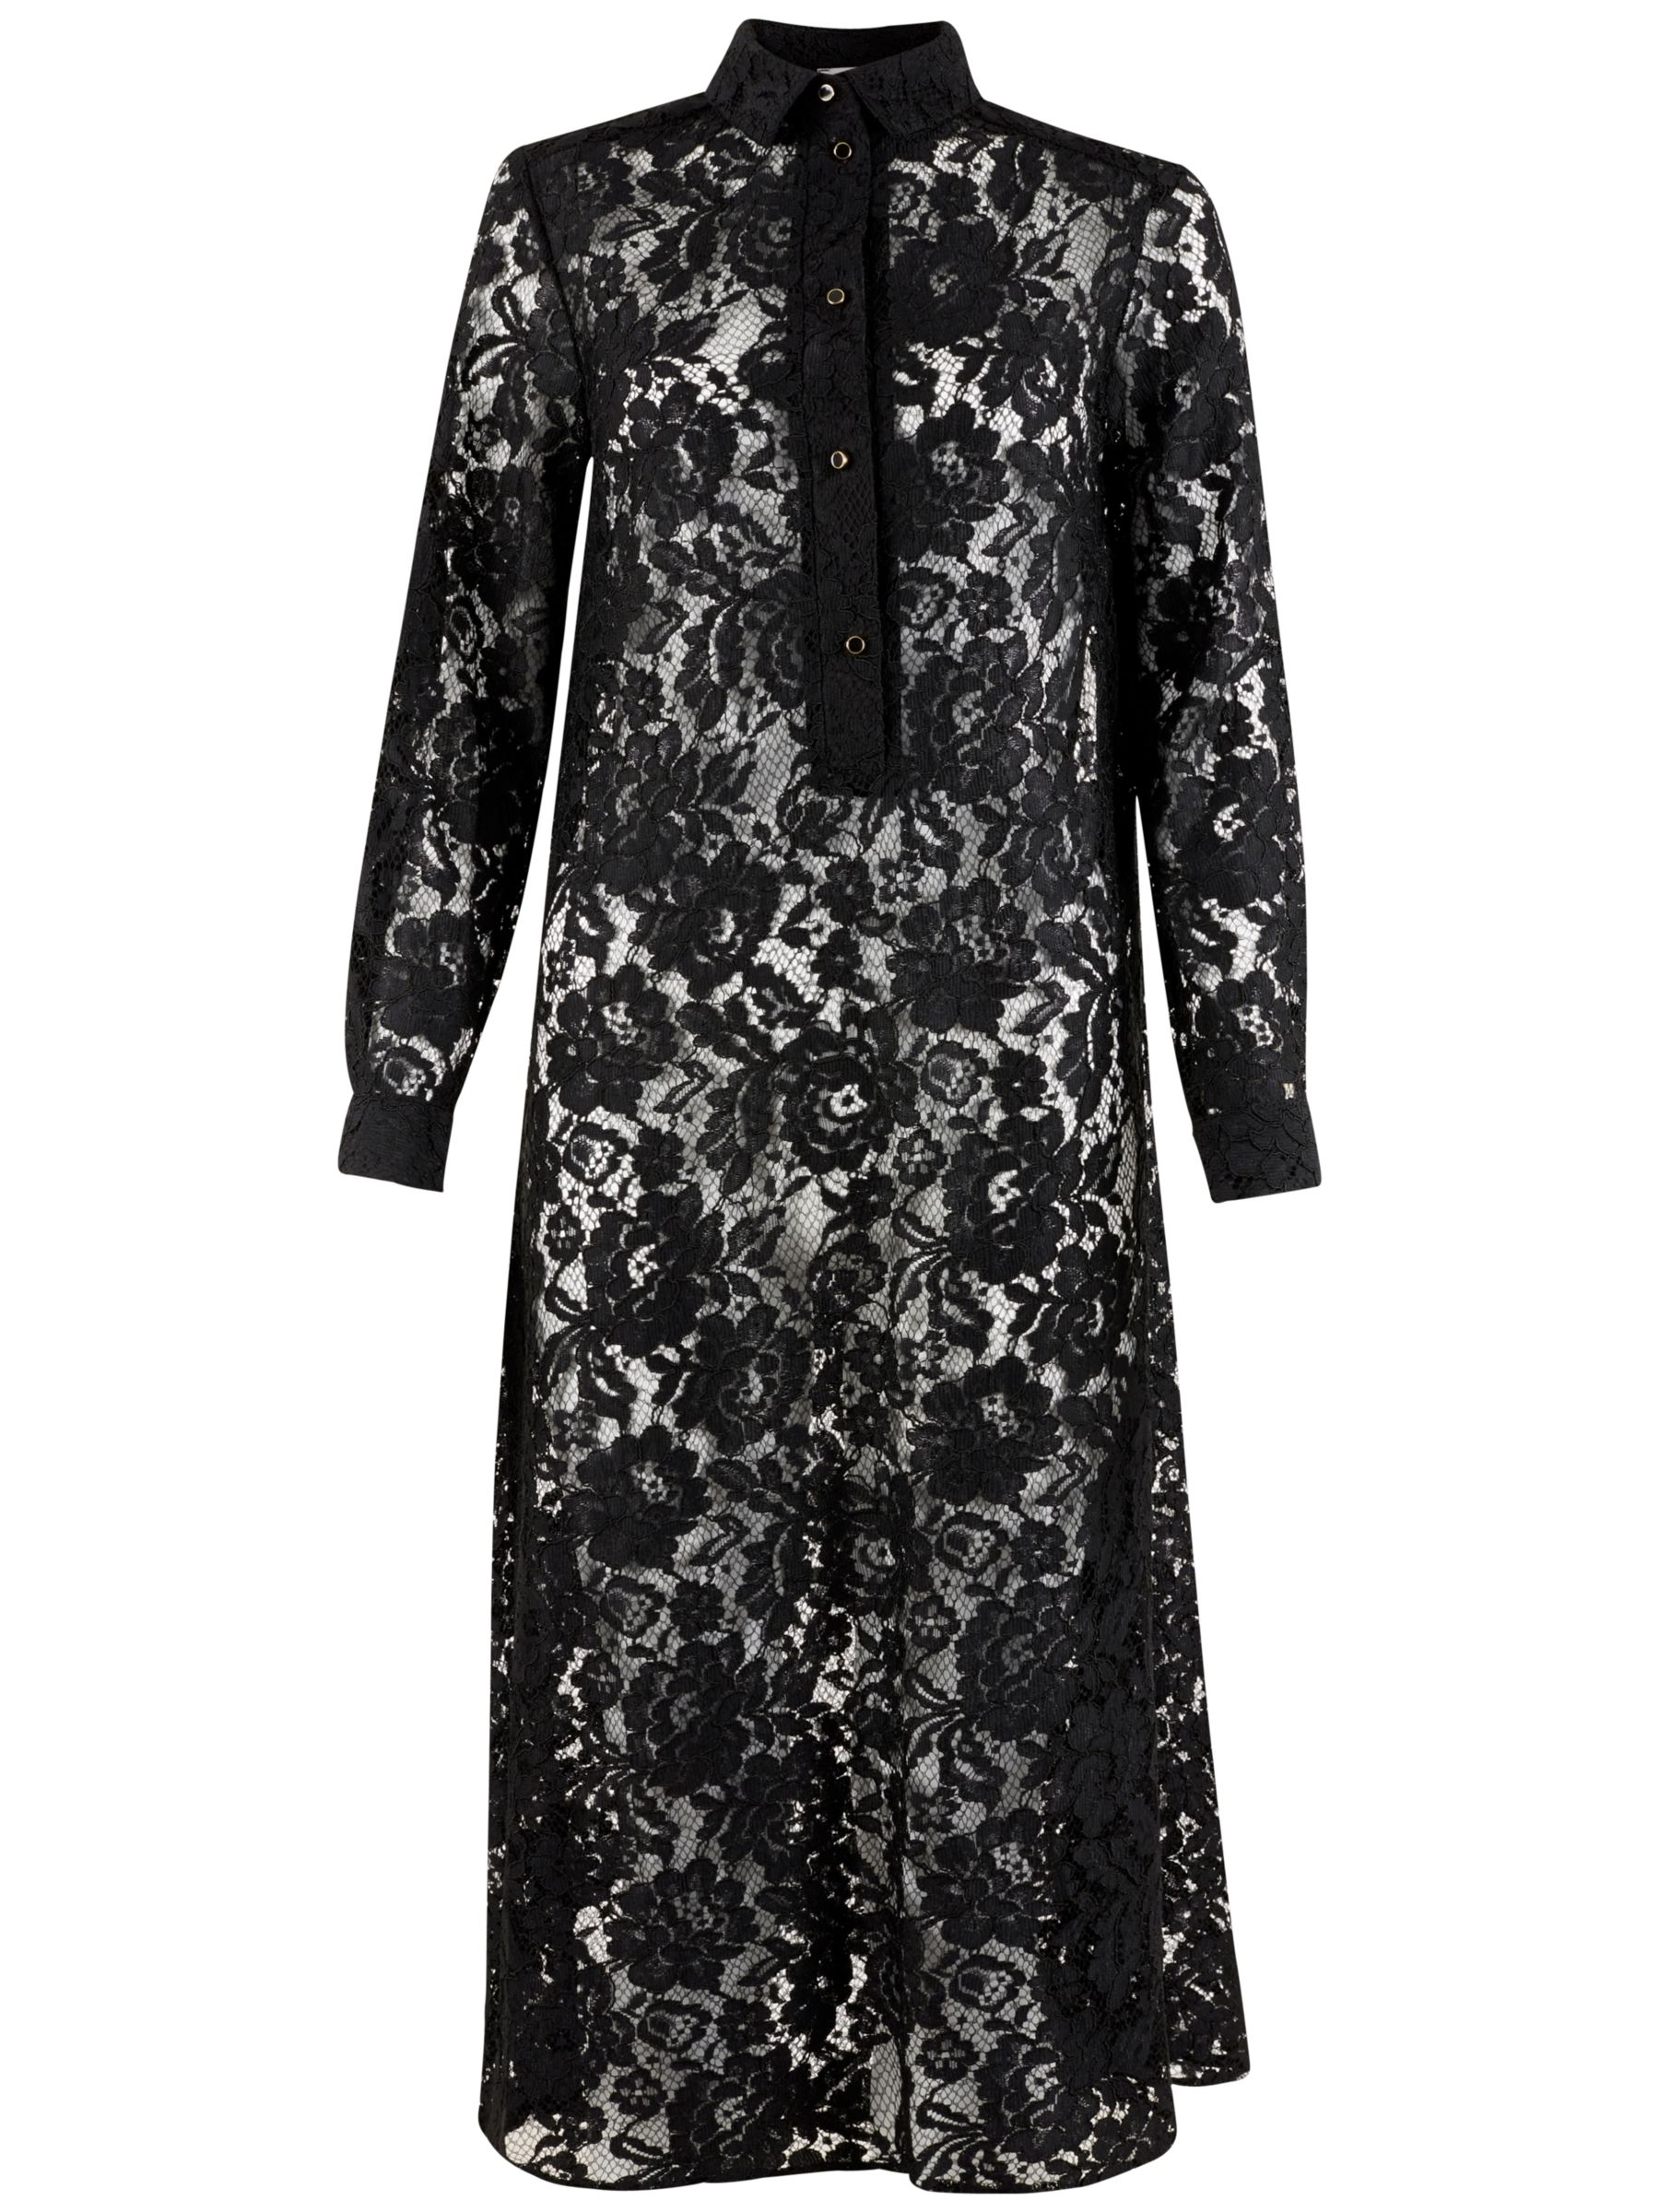 Closet Closet Long Lace Shirt Dress, Black